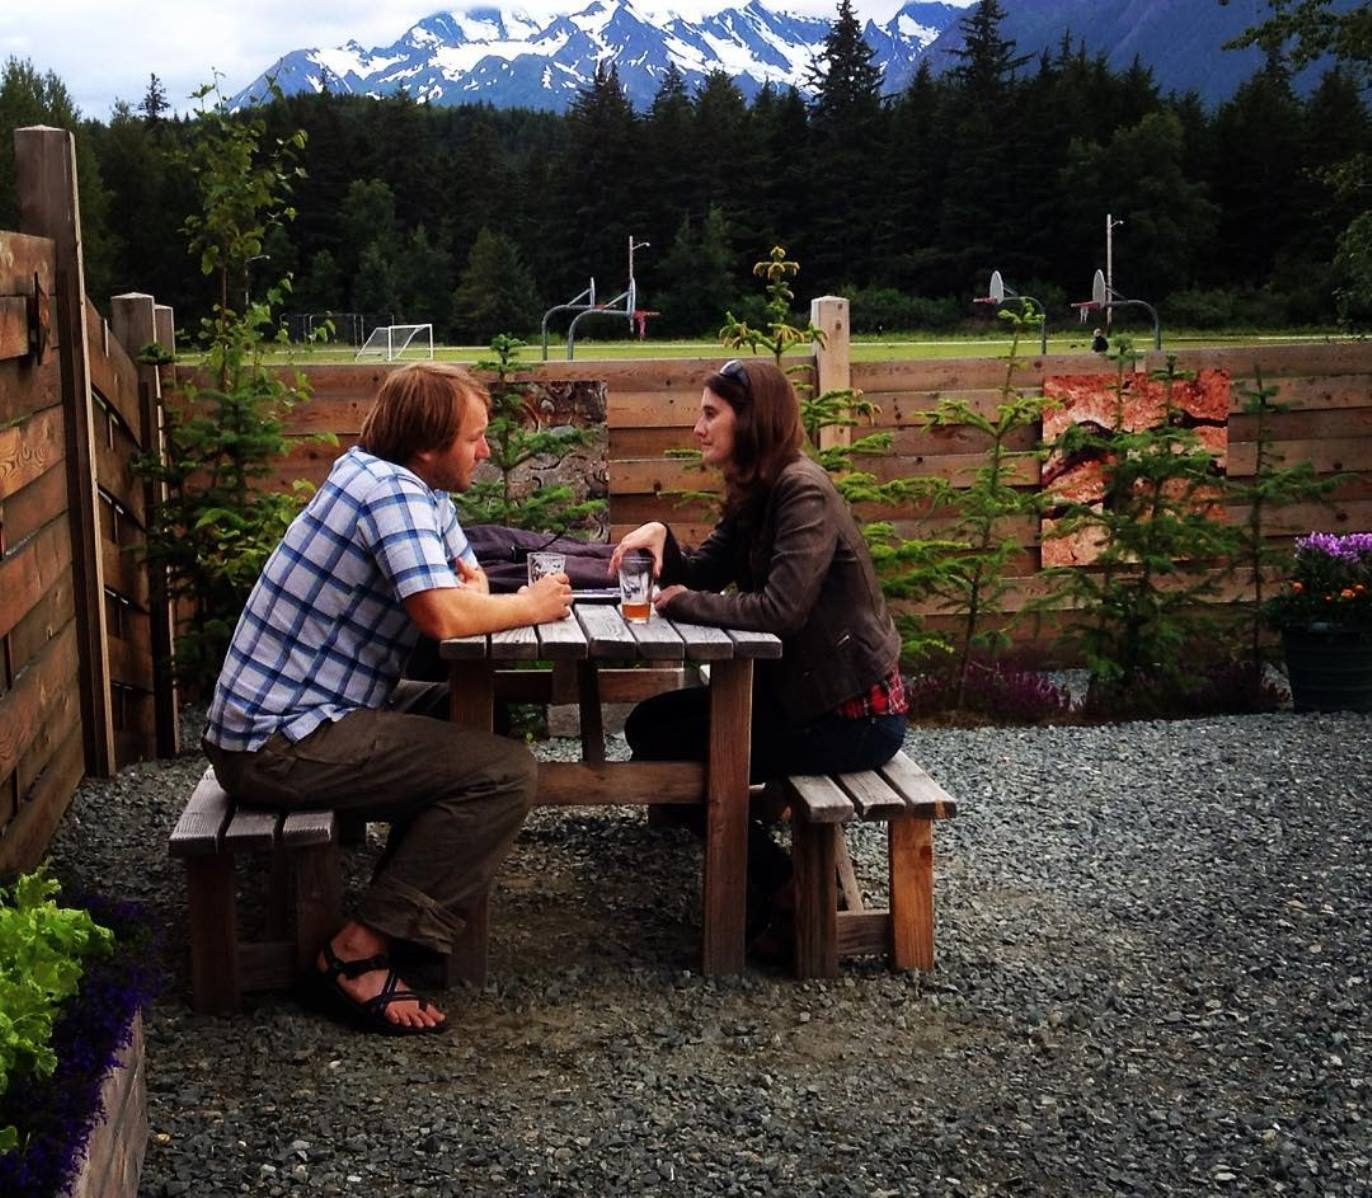 Two people sitting together at Haines Brewing's beer garden